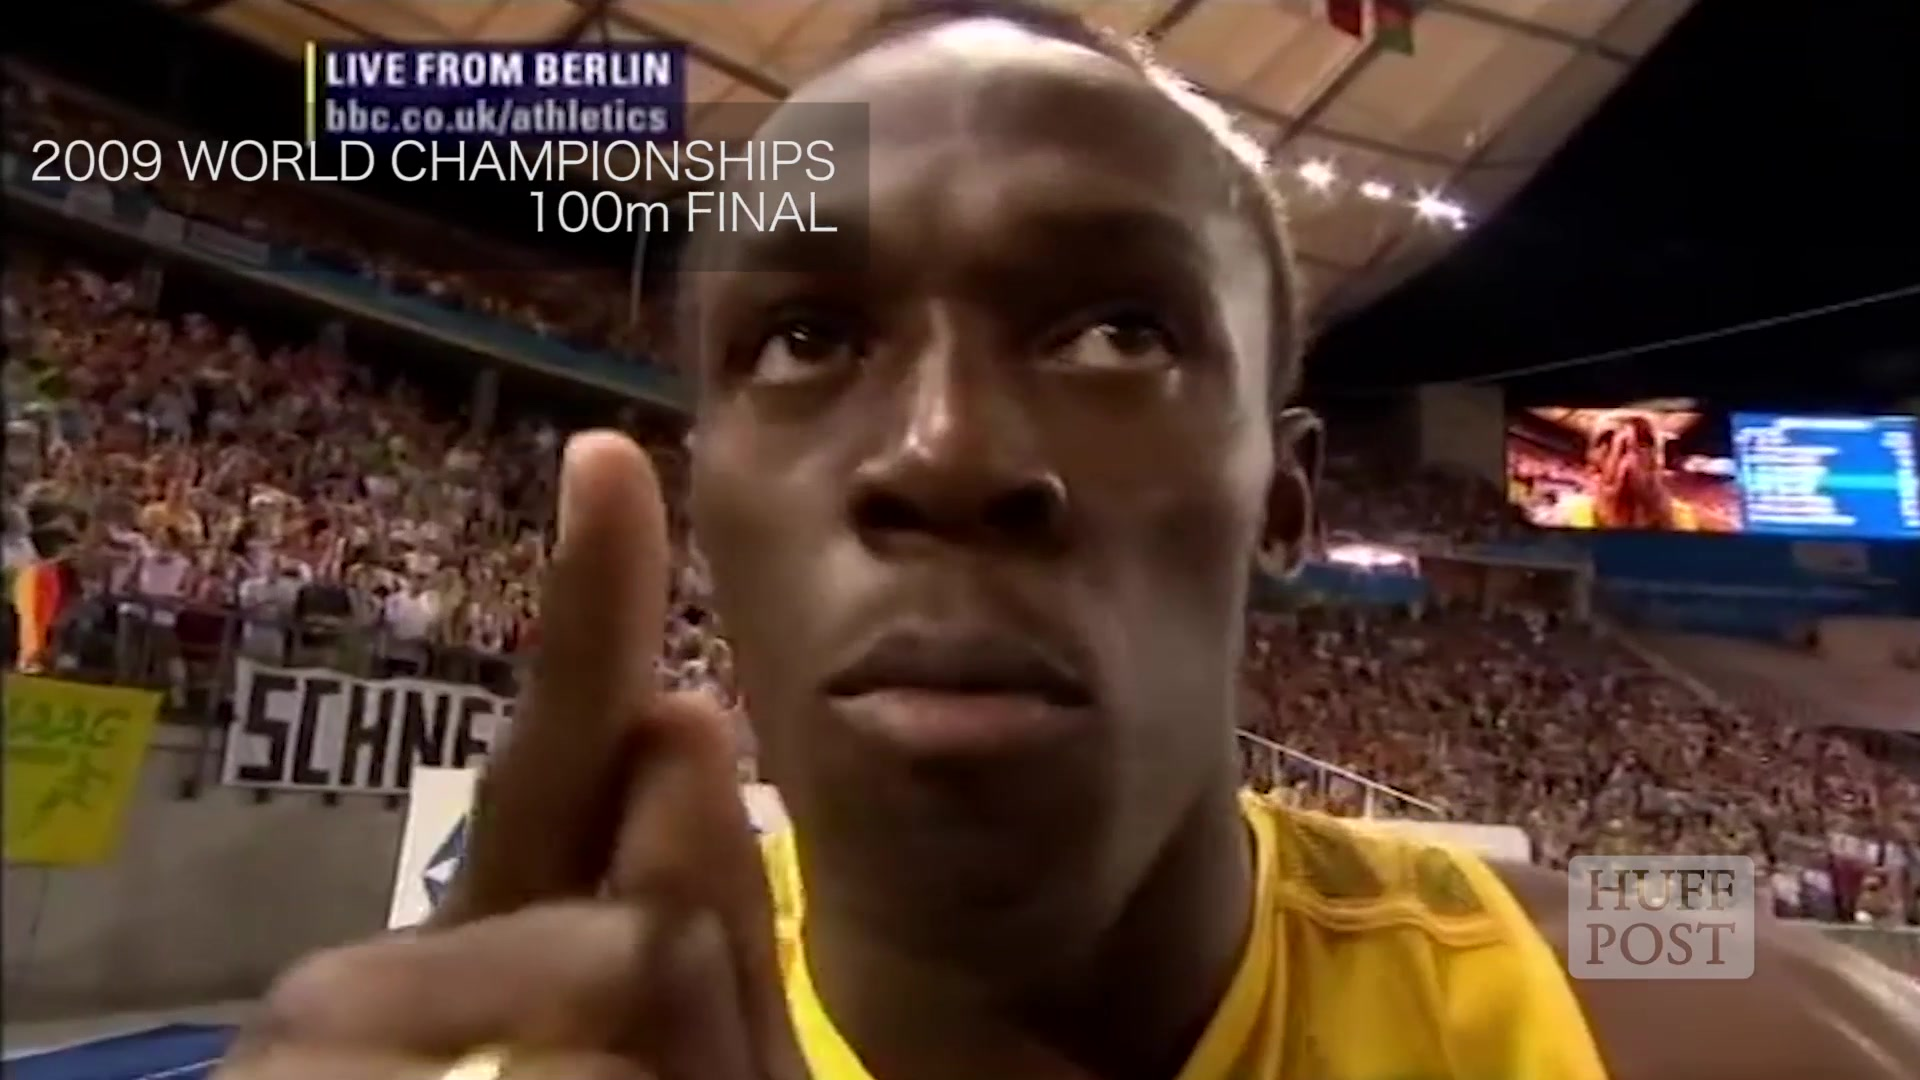 Usain Bolt - The Most Entertaining Athlete To Watch